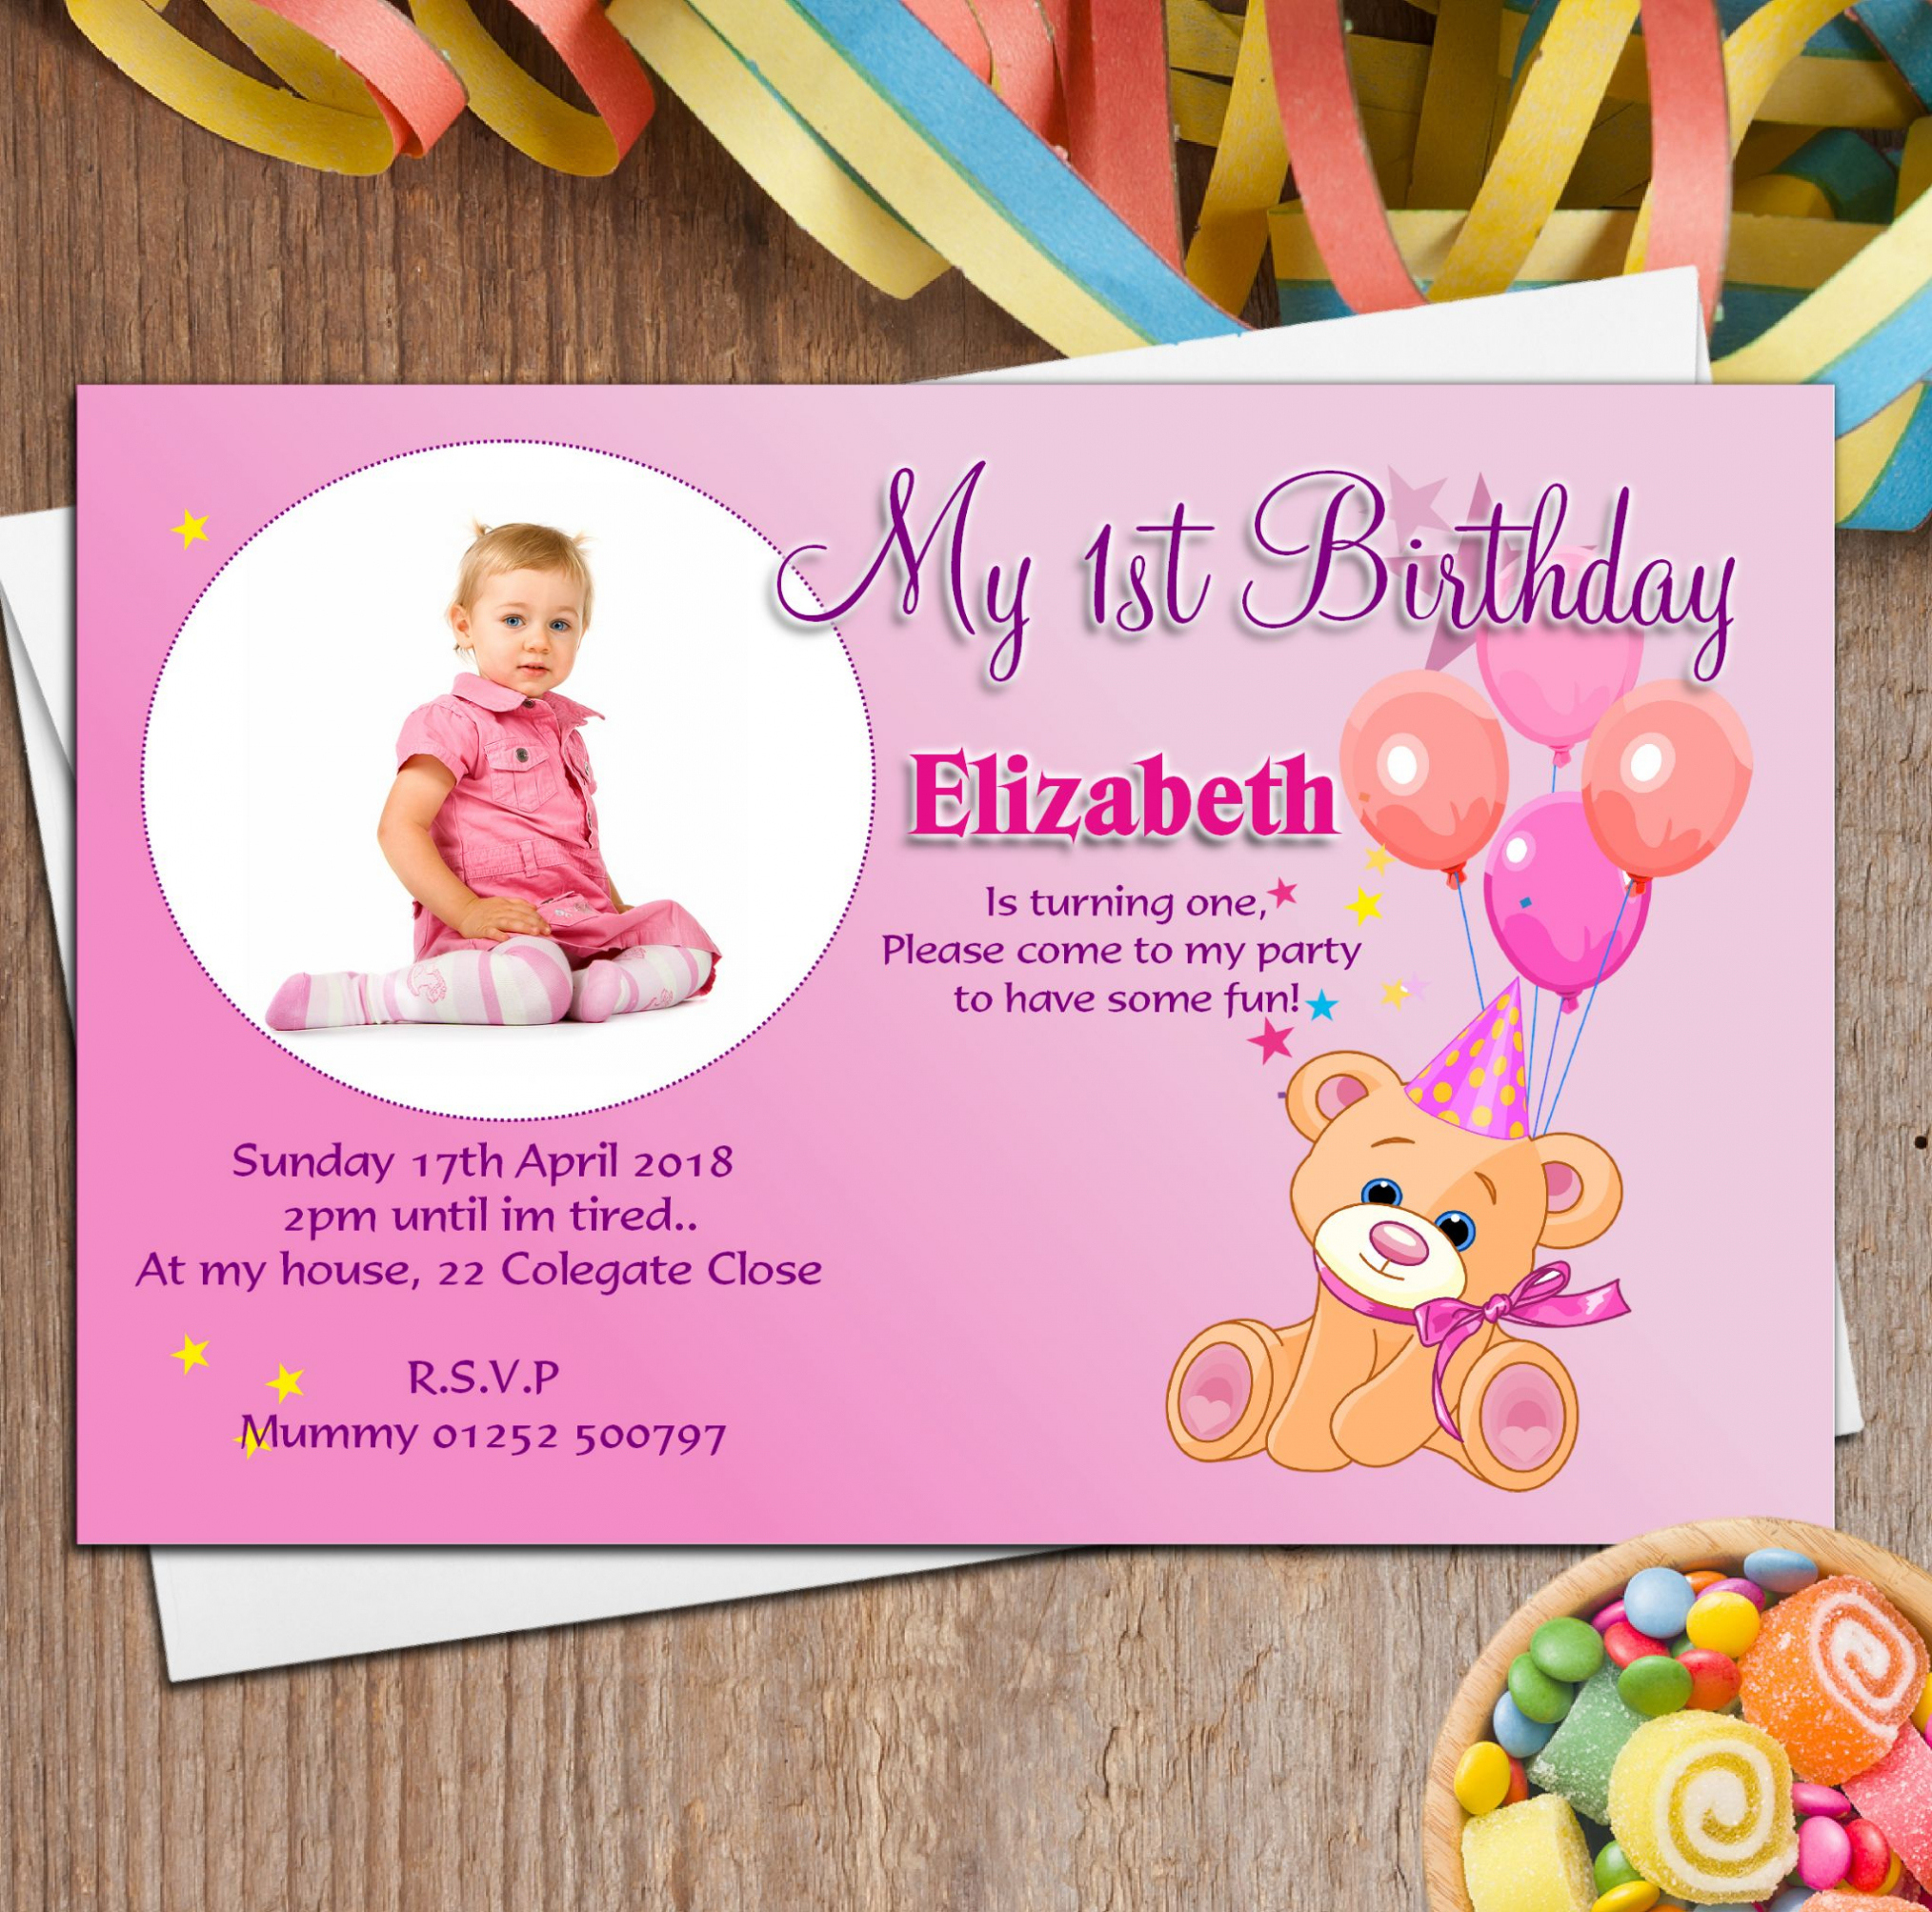 first birthday invitation letter ; 18th-party-invitation-templates-birthday-first-birthday-invitation-letter-boy-first-birthday